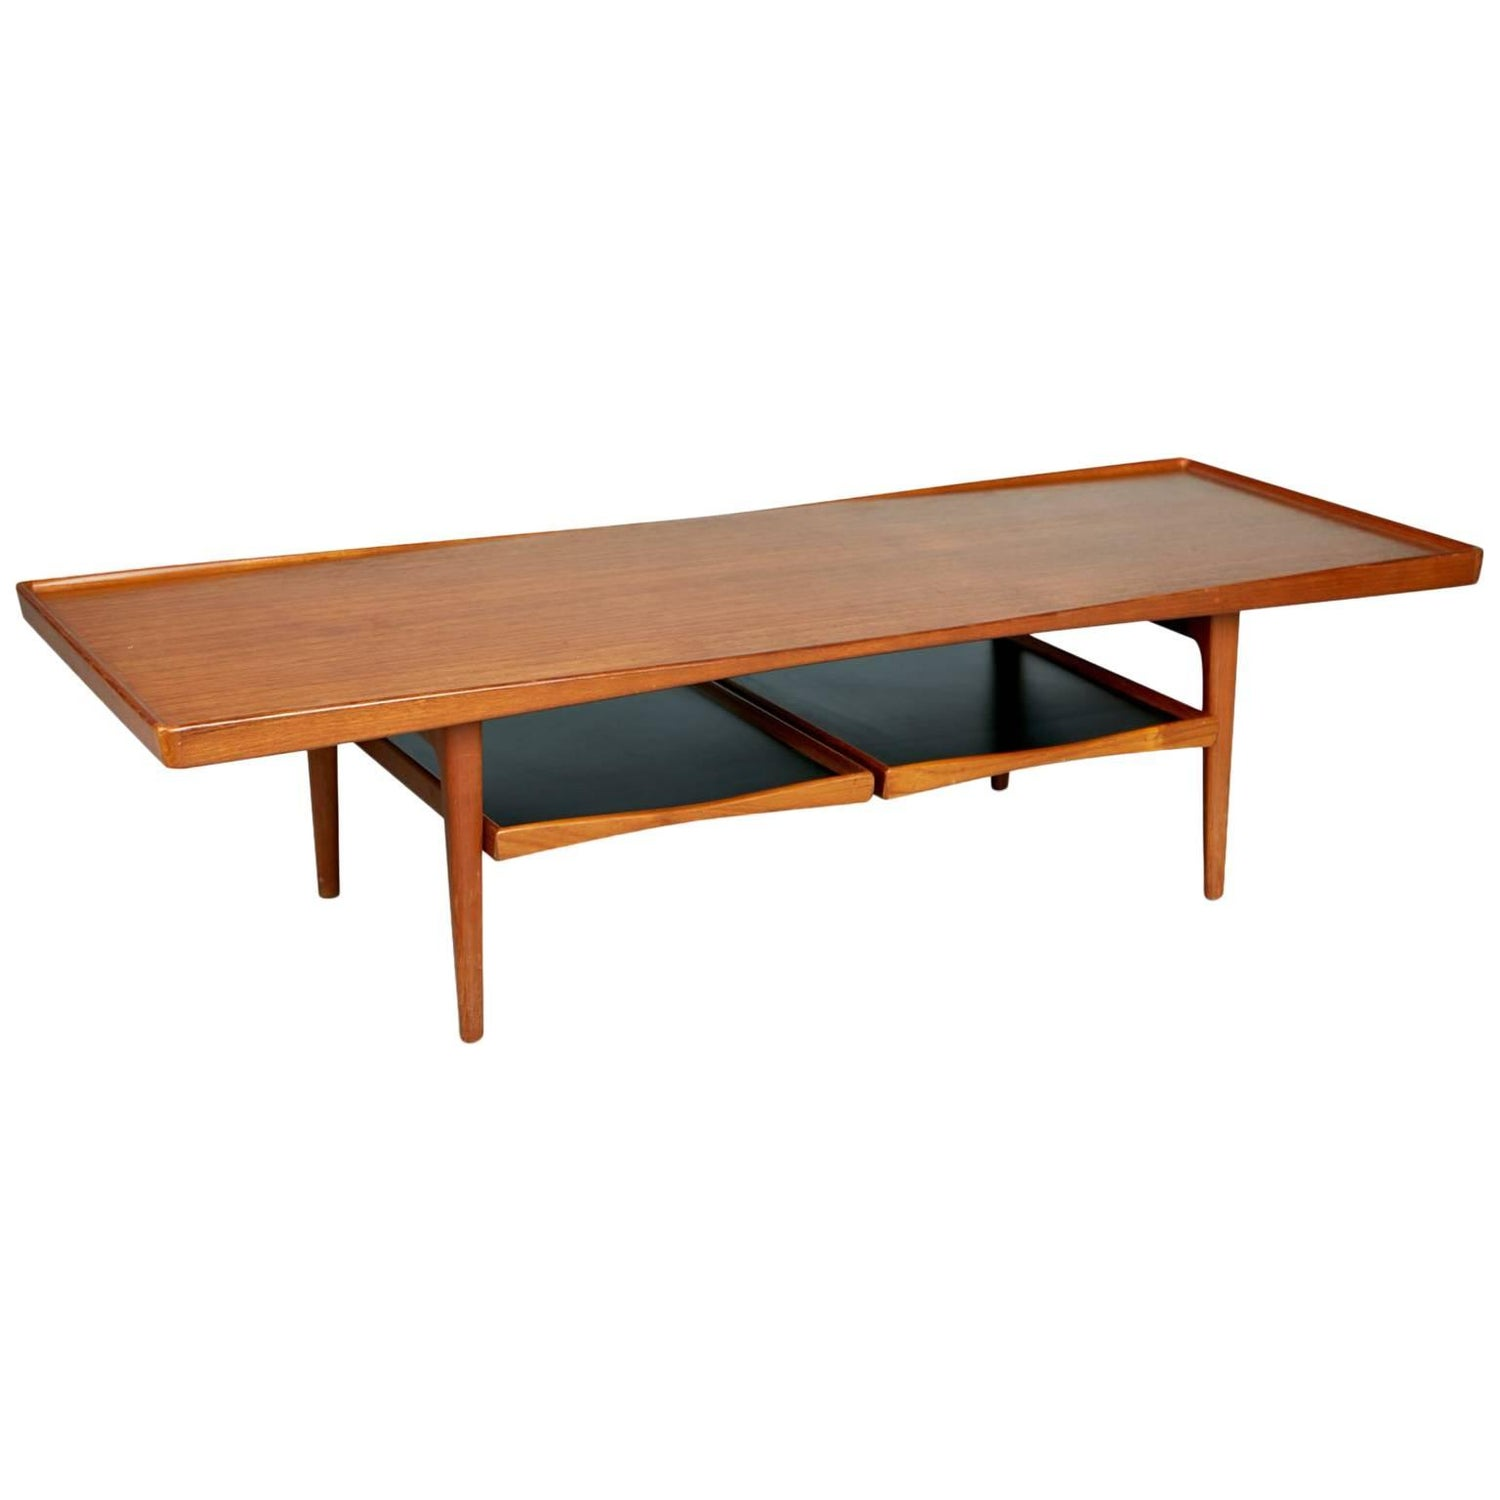 Danish Teak Folding Spider Leg Coffee Table by Selig at 1stdibs